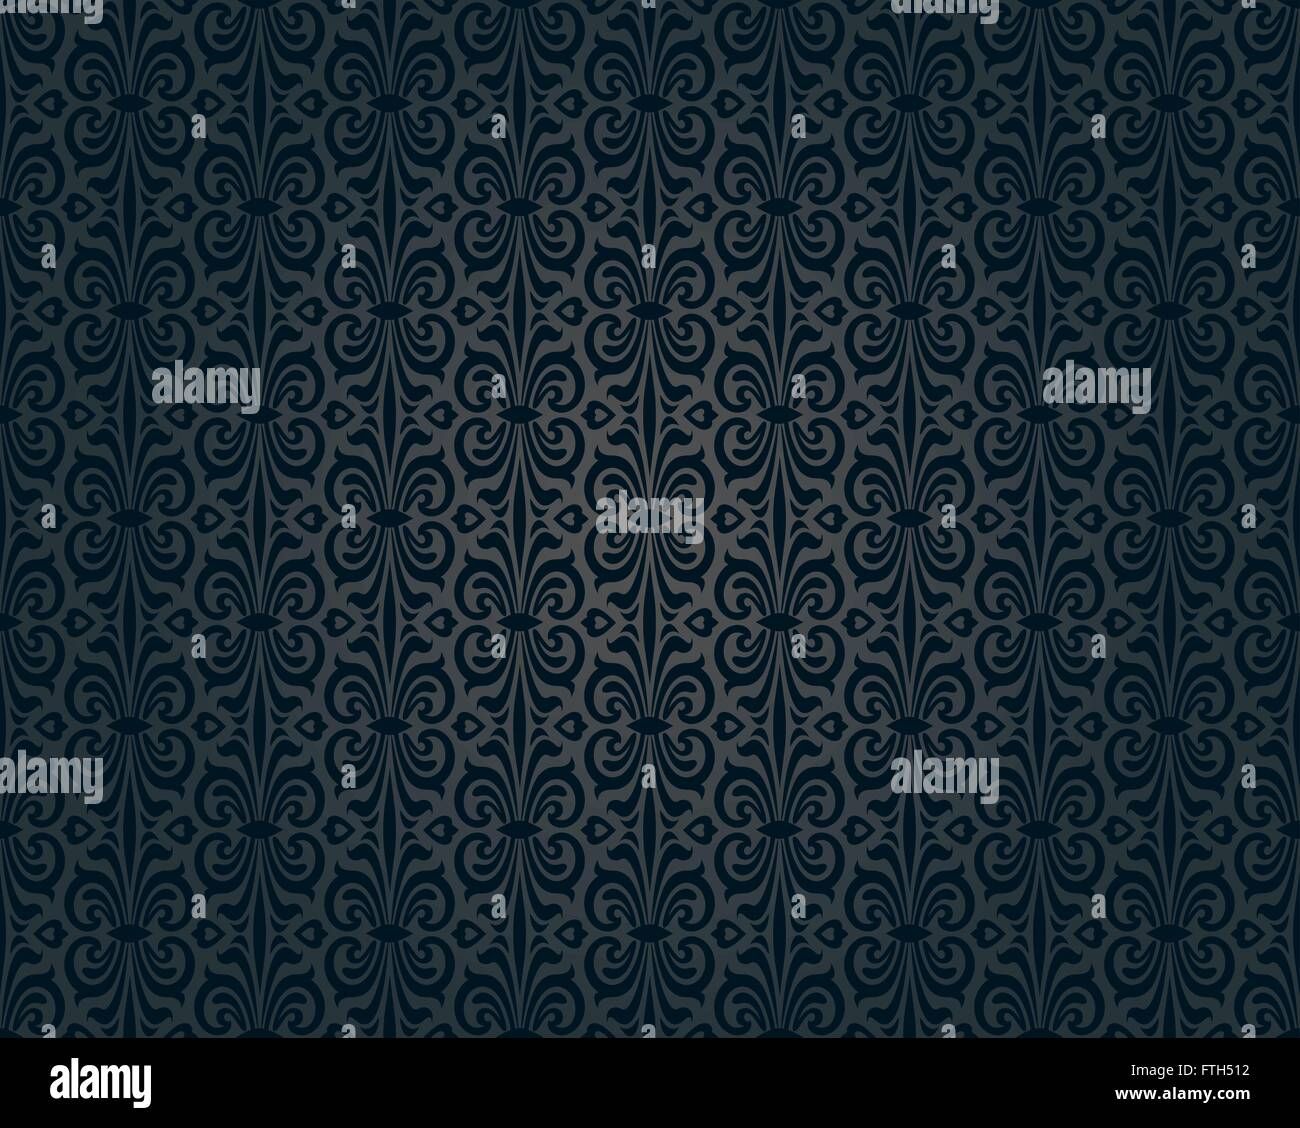 Black Vintage Wallpaper Background Repetitive Pattern Design